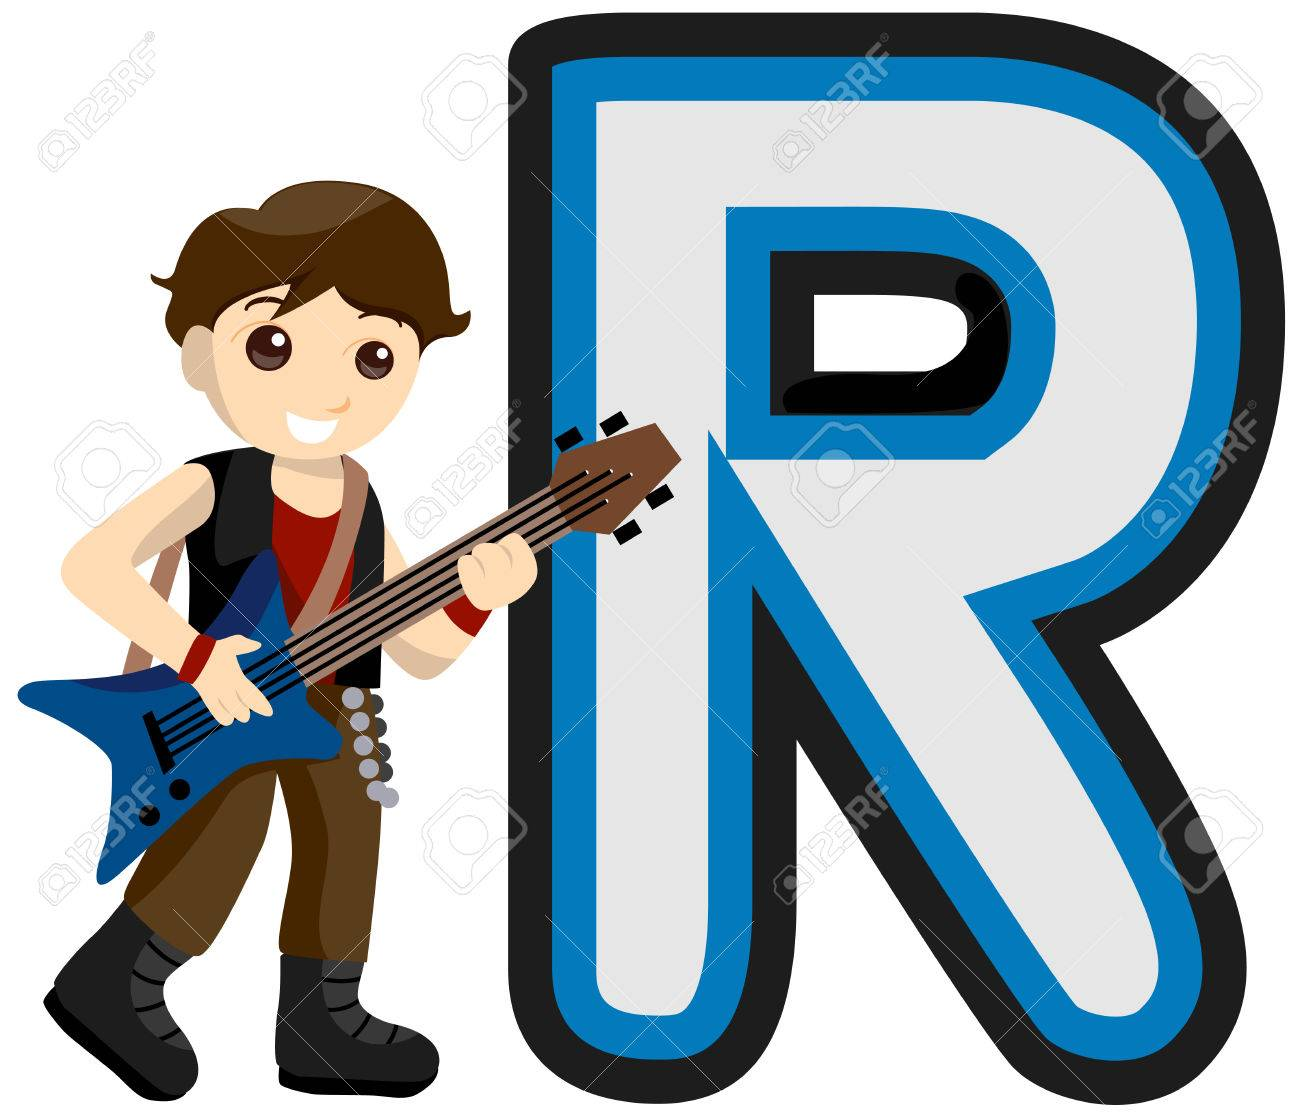 alphabet kids rock star with clipping path royalty free cliparts rh 123rf com